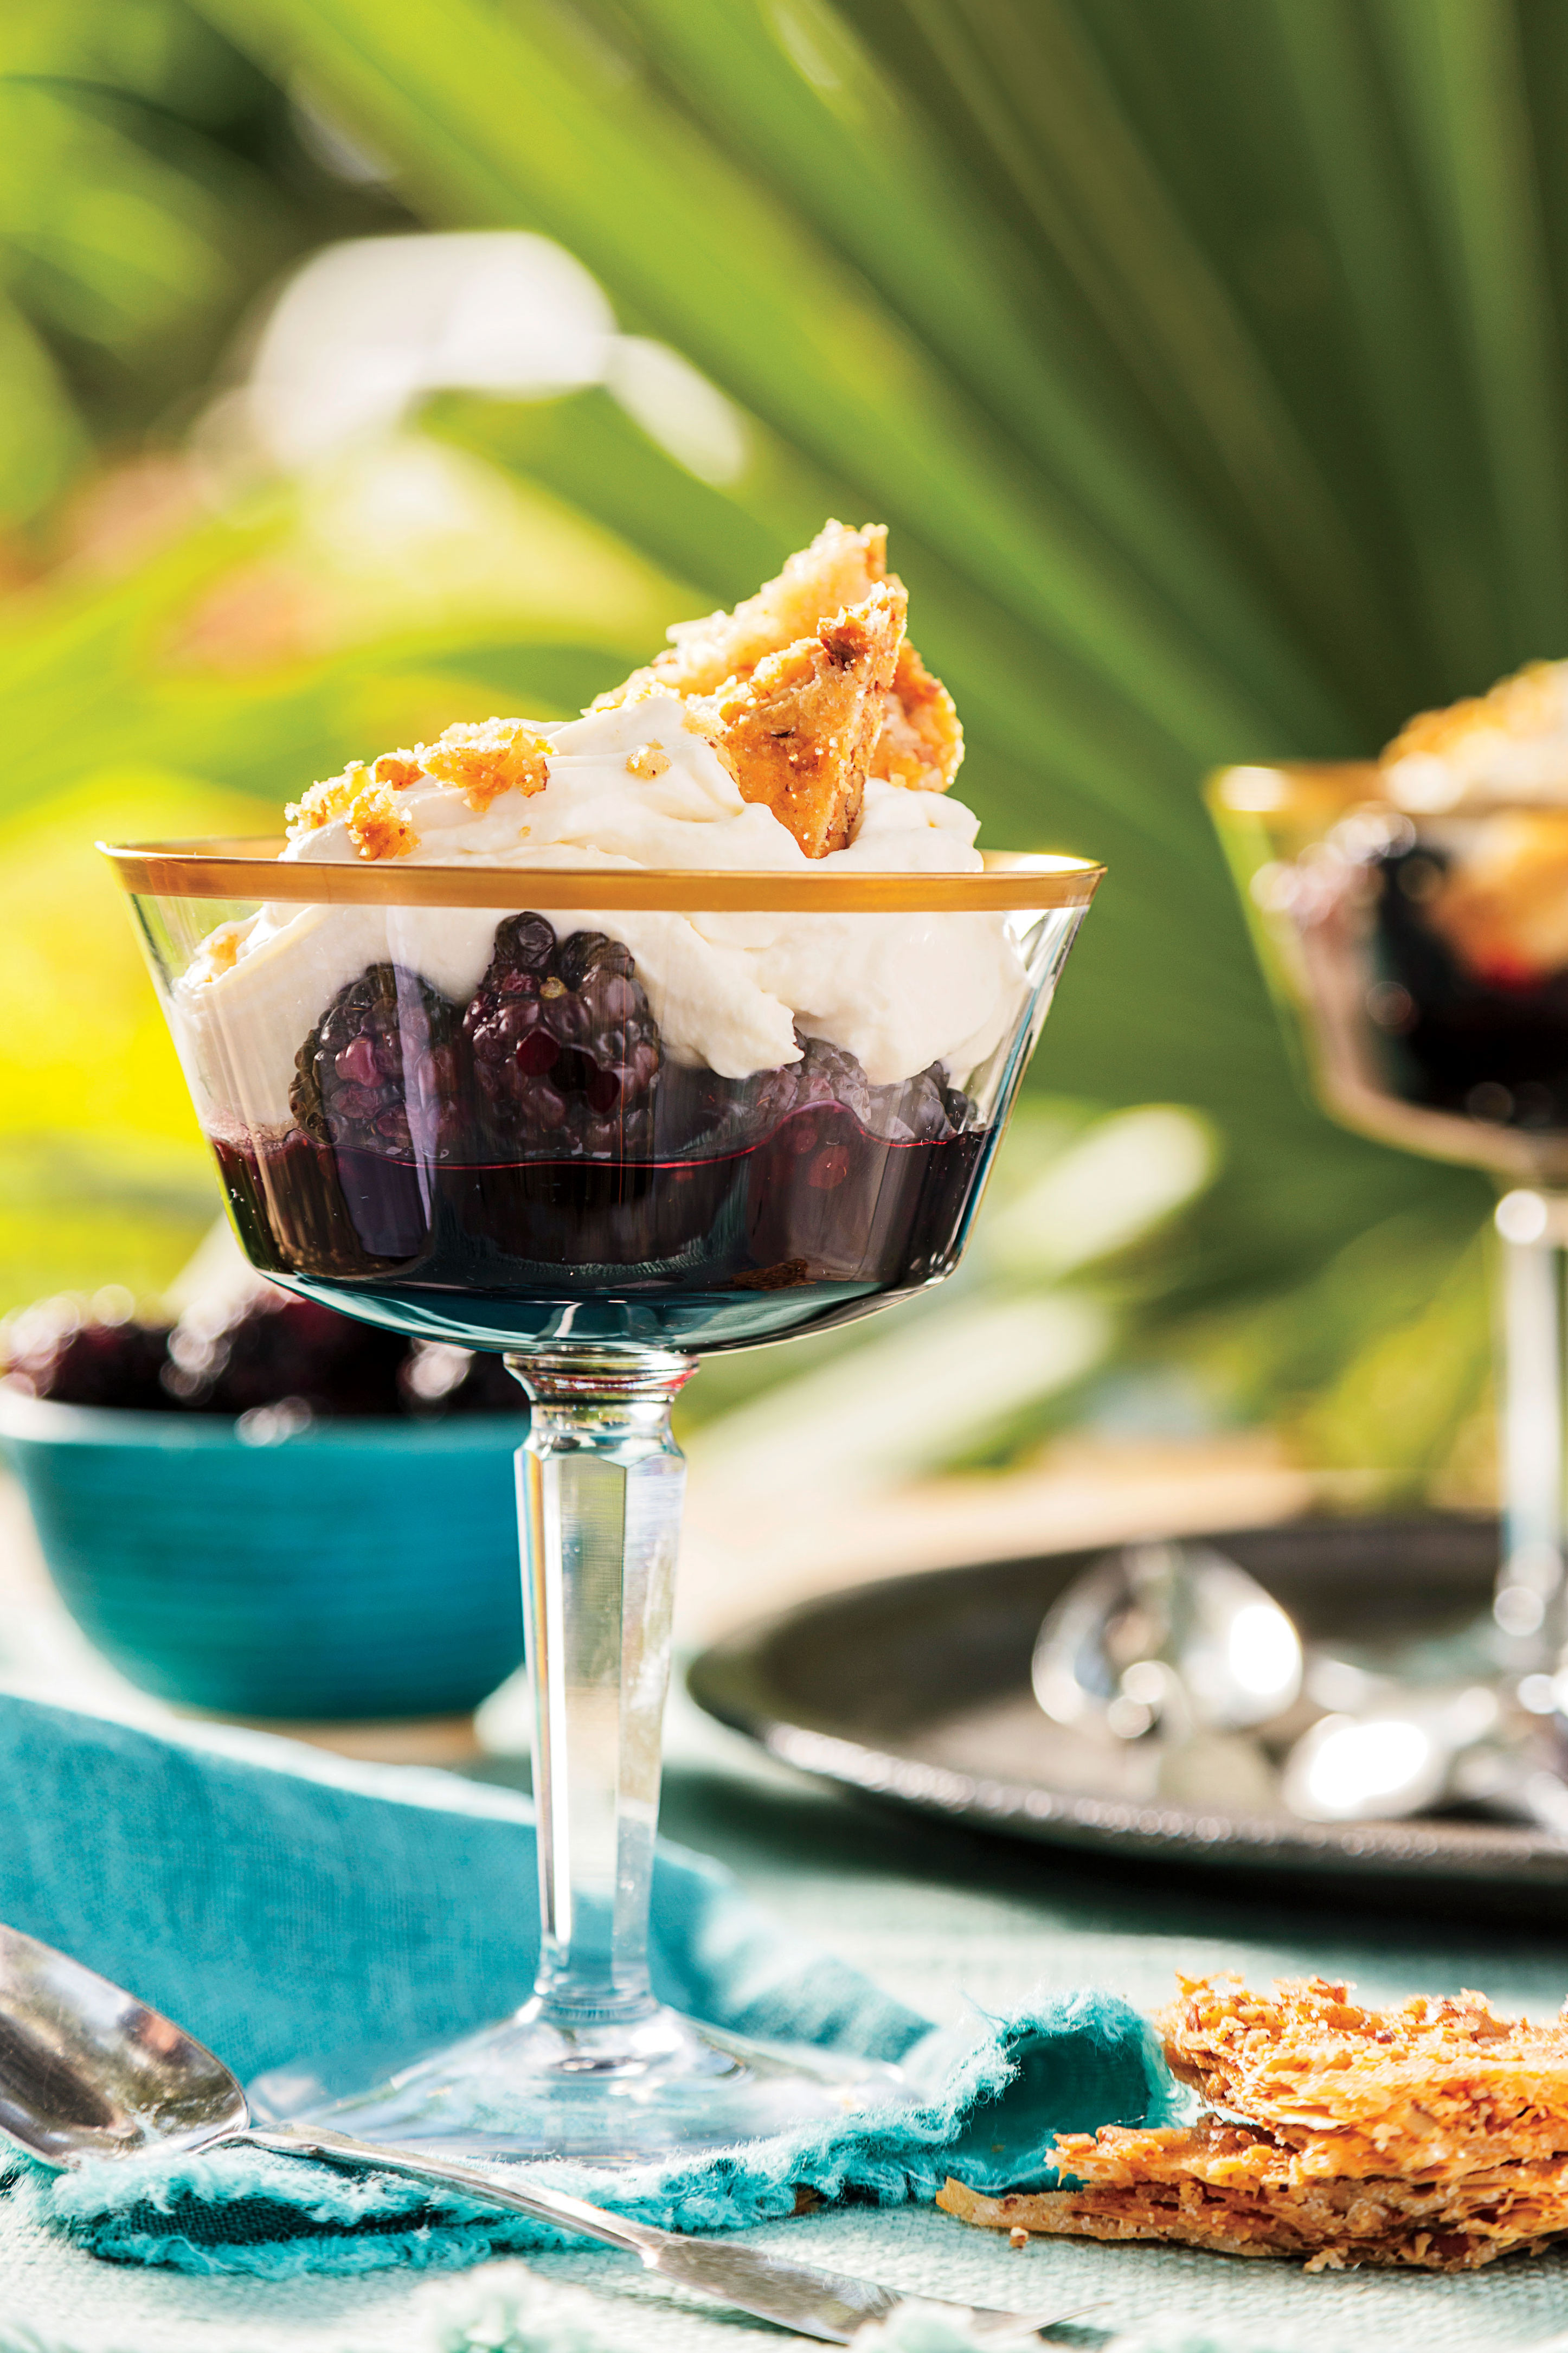 Blackberry Trifles with Pecan Feuilletage and Mascarpone-Cane Syrup Mousse Recipe